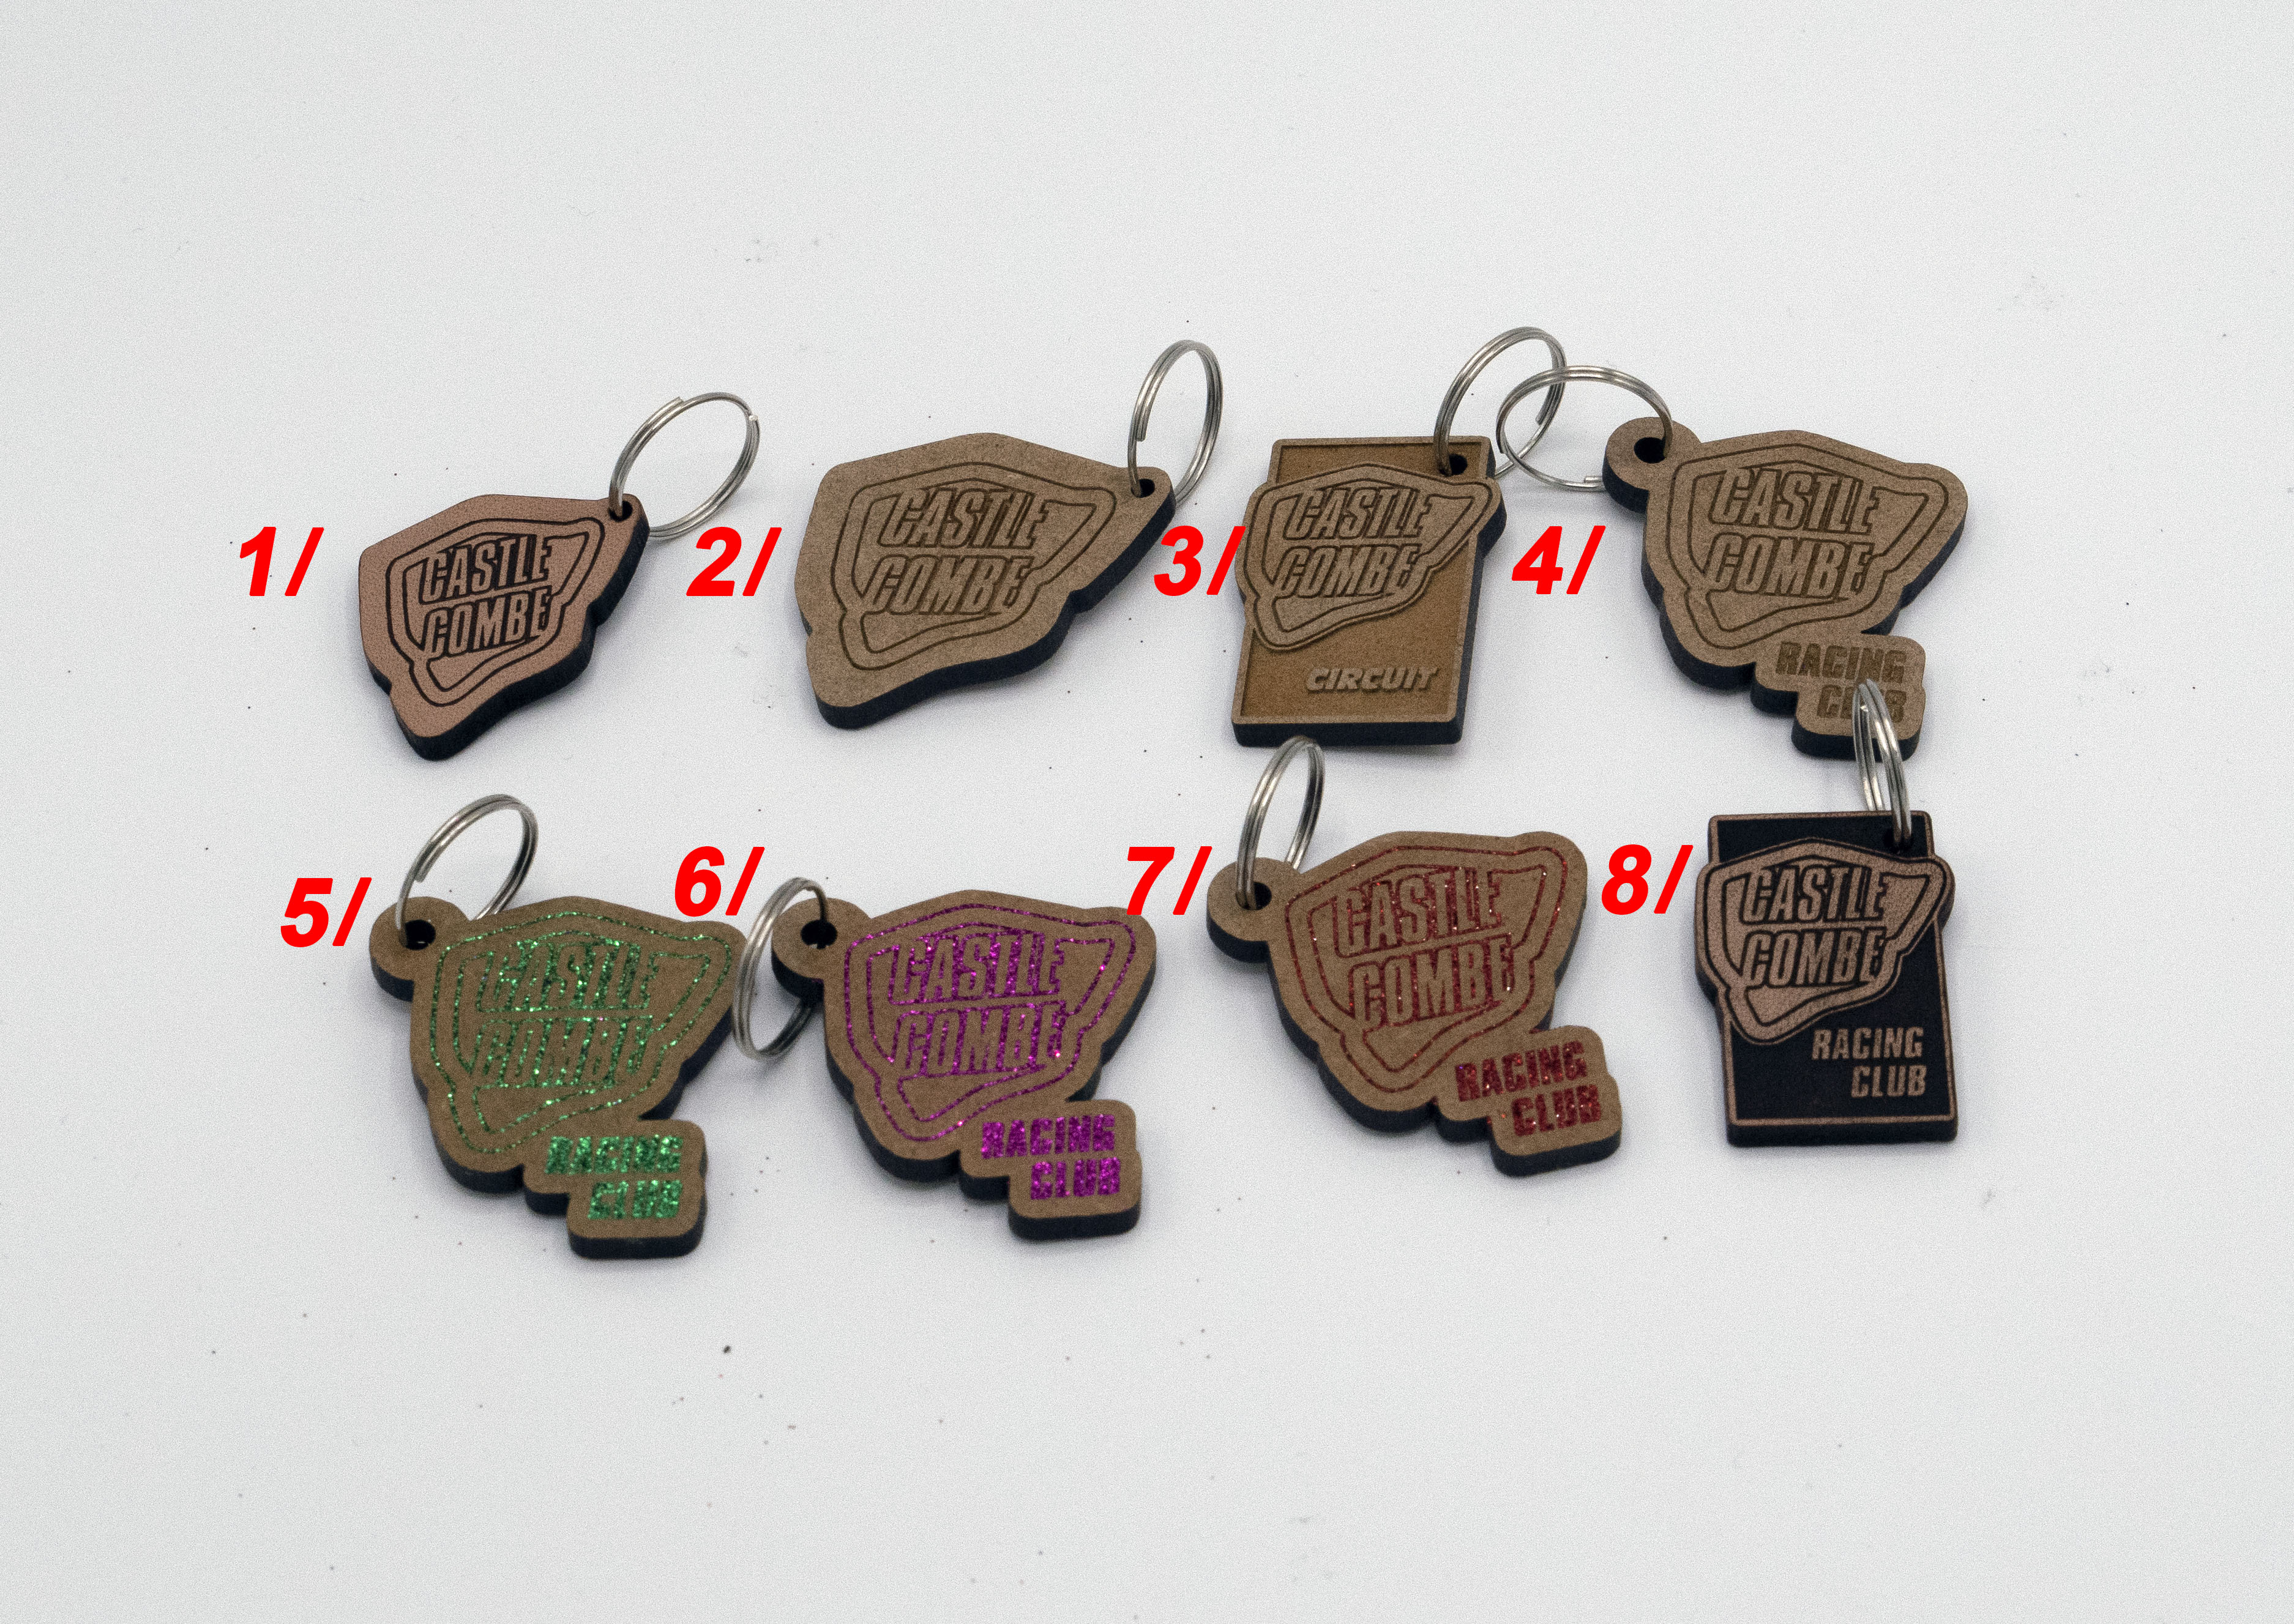 Castle Combe Circuit Keyrings